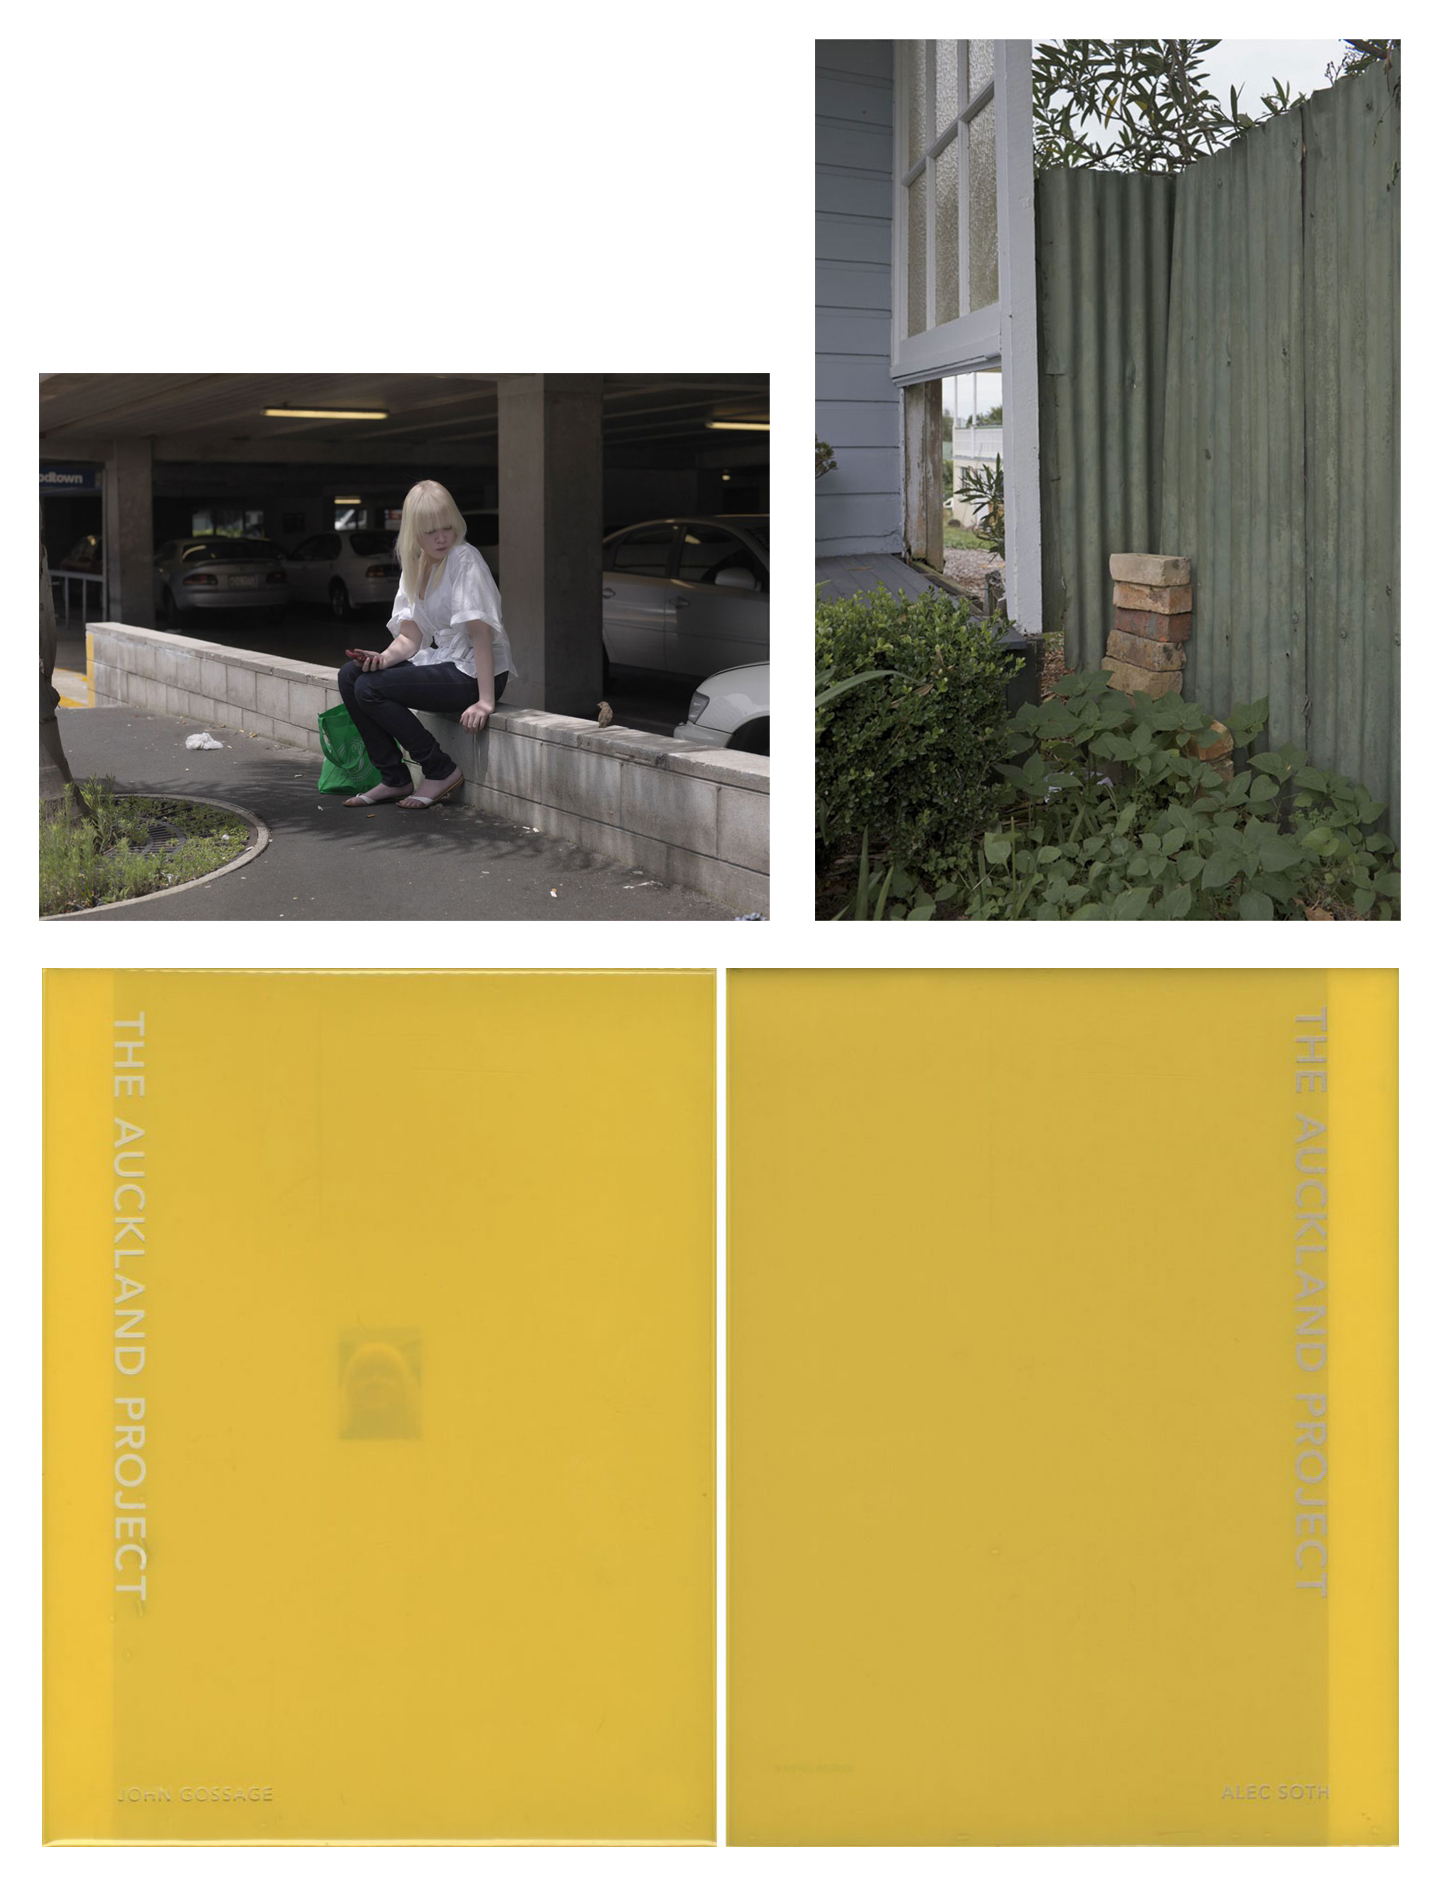 John Gossage & Alec Soth: The Auckland Project, Limited Edition (with 2 Prints)